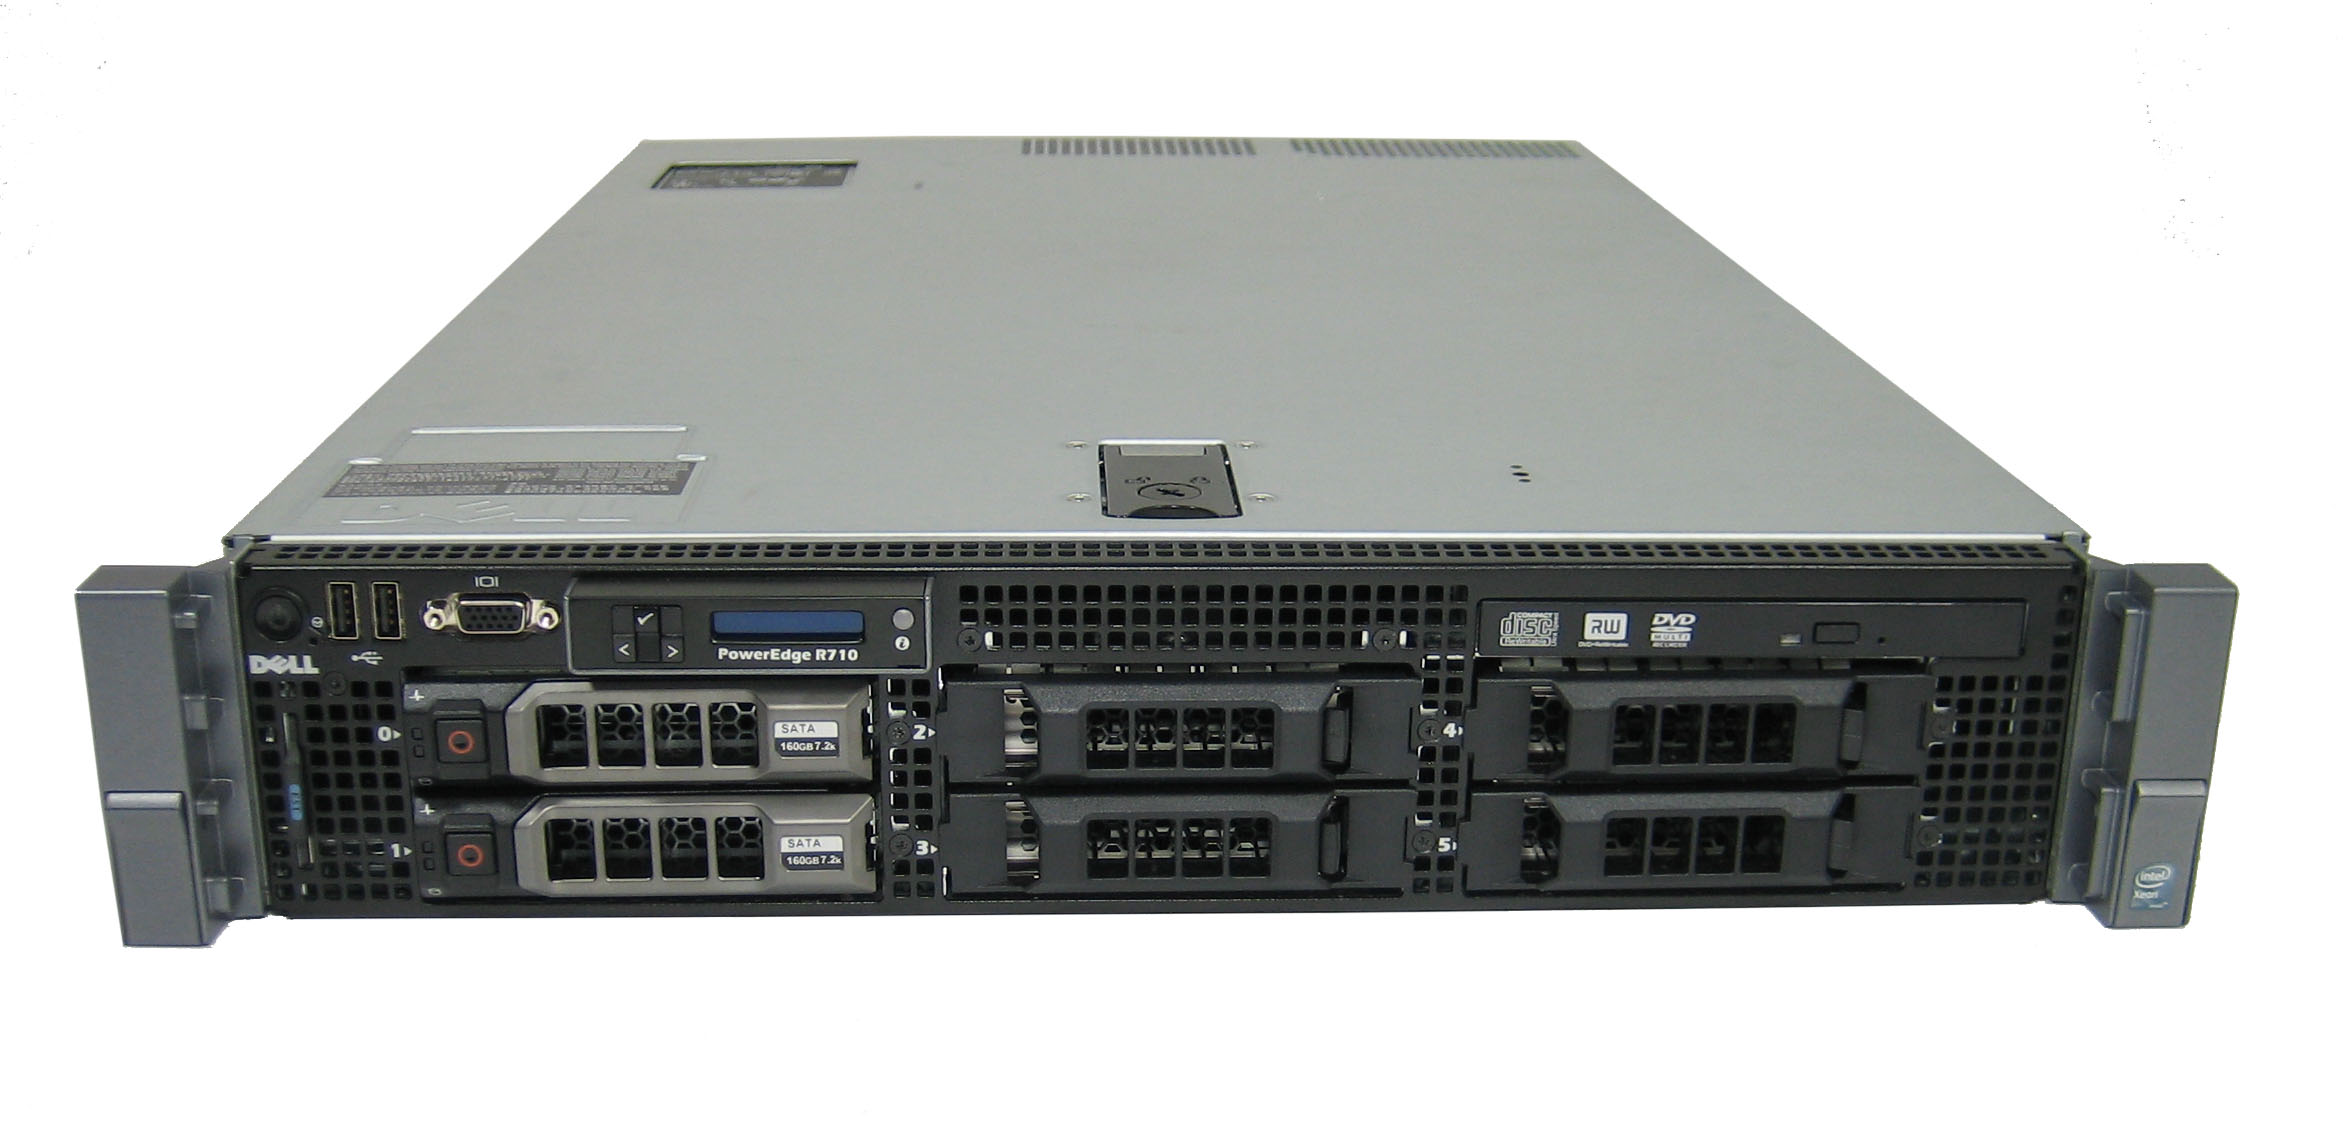 MÁY CHỦ SERVER DELL POWEREDGE R710 Six Core X5670 2.93Ghz